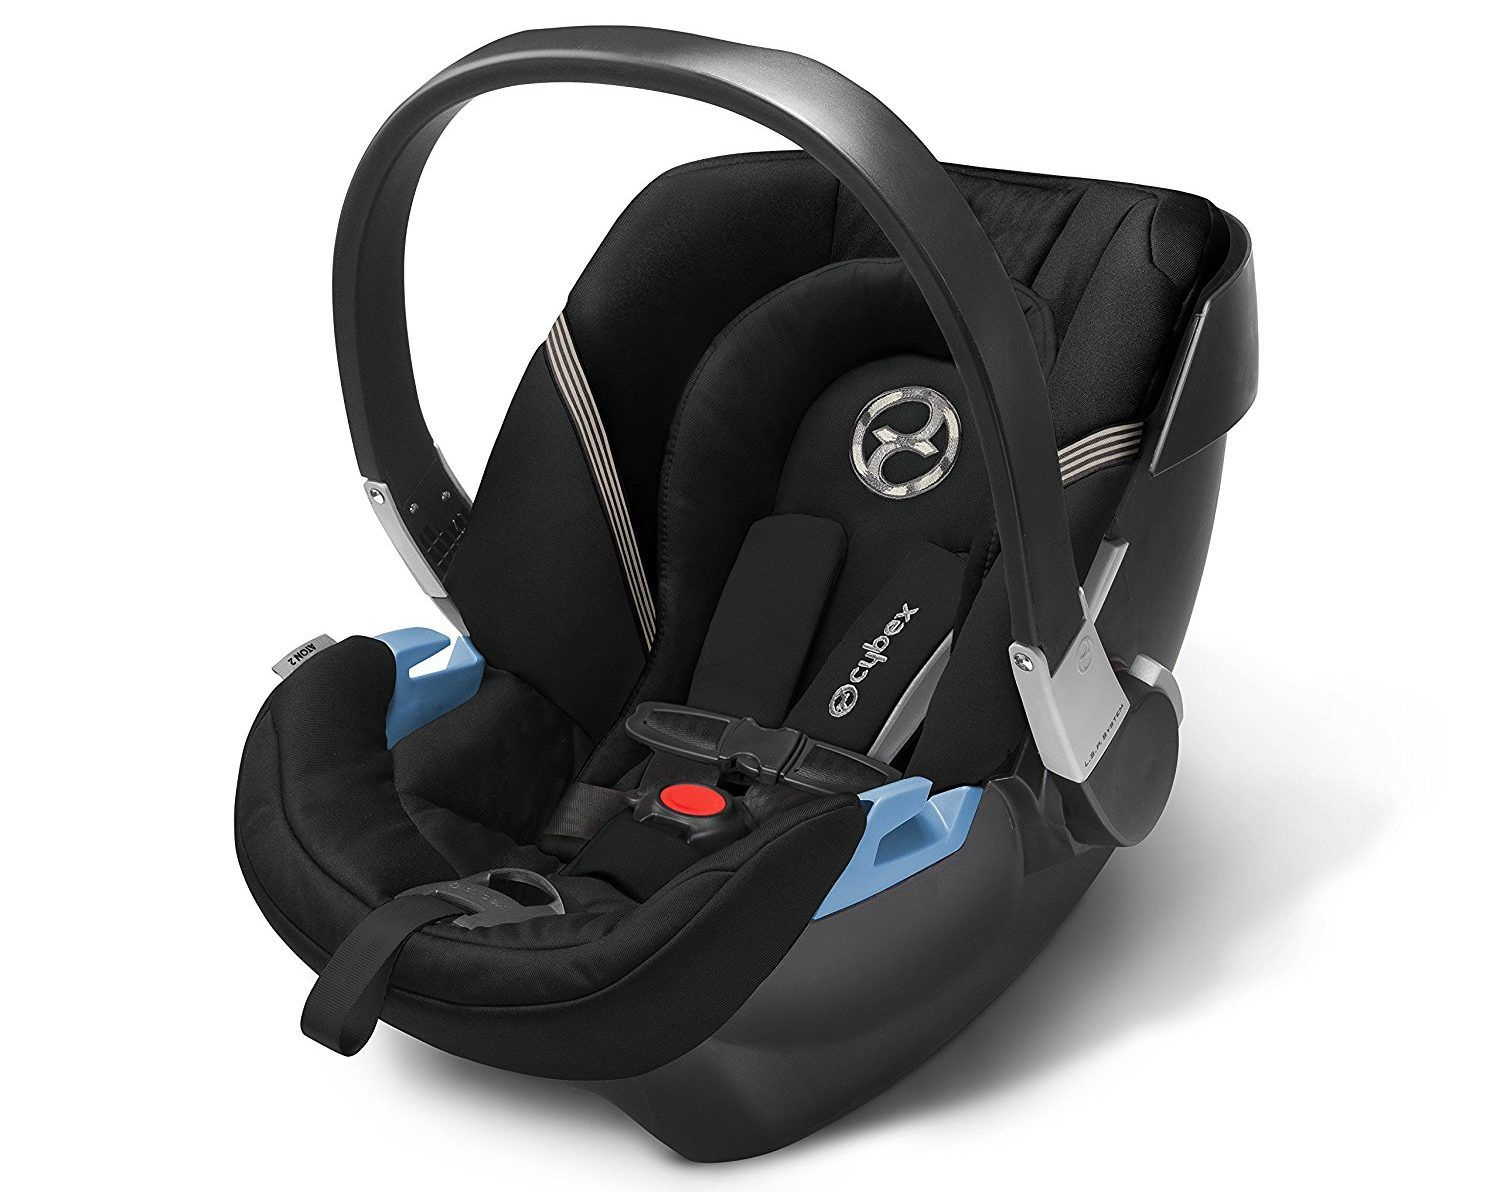 Preemie Baby Must Have Cybex Aton2 Infant Car Seat